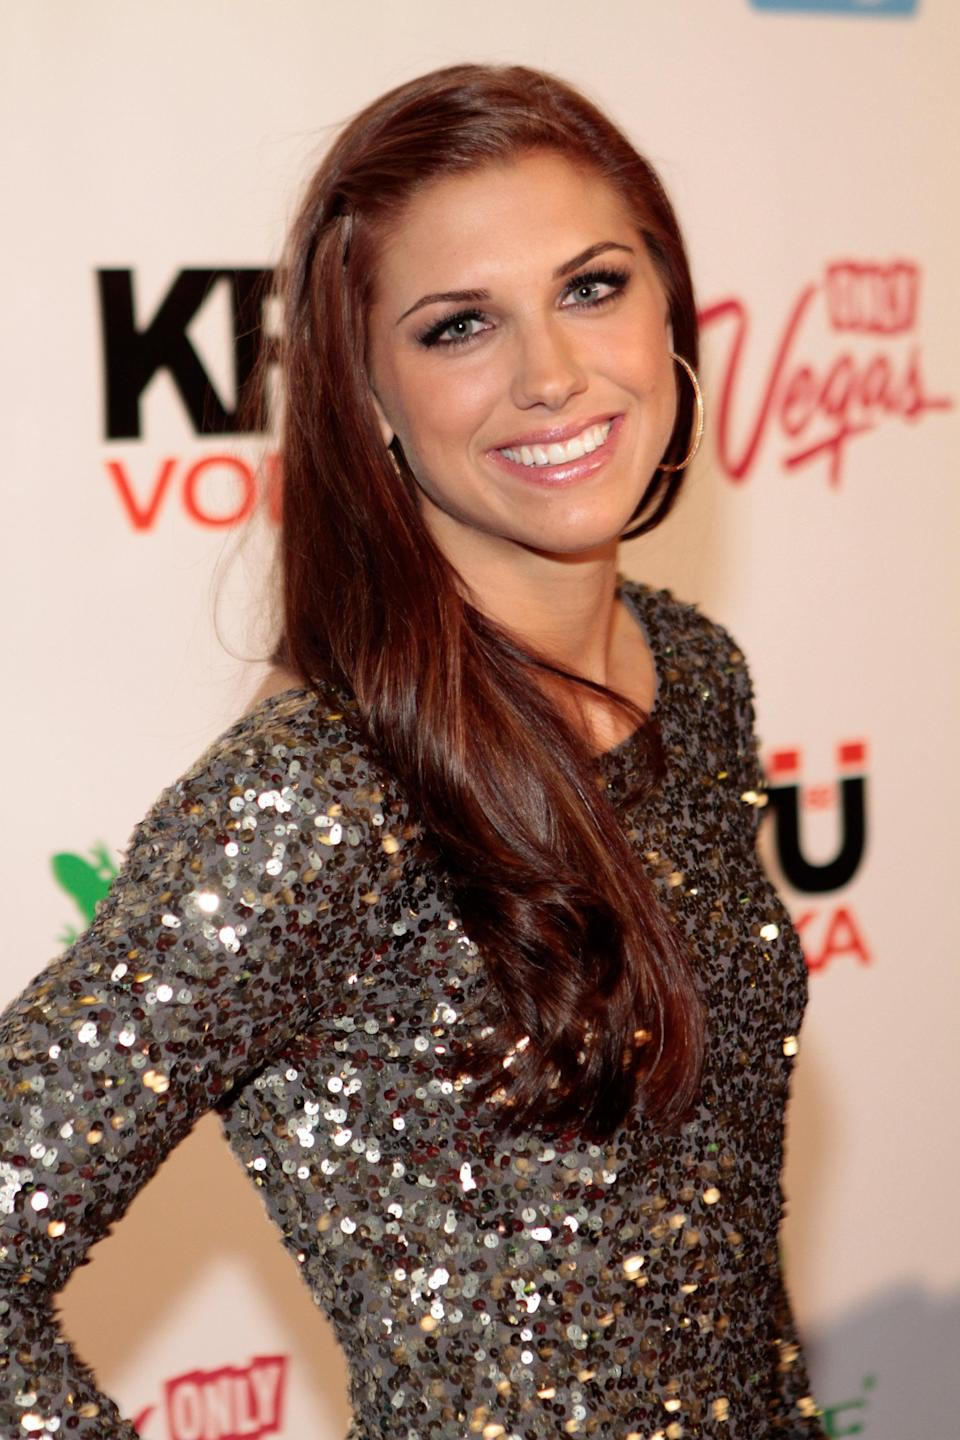 LAS VEGAS, NV - FEBRUARY 15: SI bodypaint model. soccer player Alex Morgan arrives at SI Swimsuit On Location hosted by Haze Nightclub at the Aria Resort & Casino at CityCenter on February 15, 2012 in Las Vegas, Nevada. (Photo by Jacob Andrzejczak/Getty Images for Sports Illustrated)